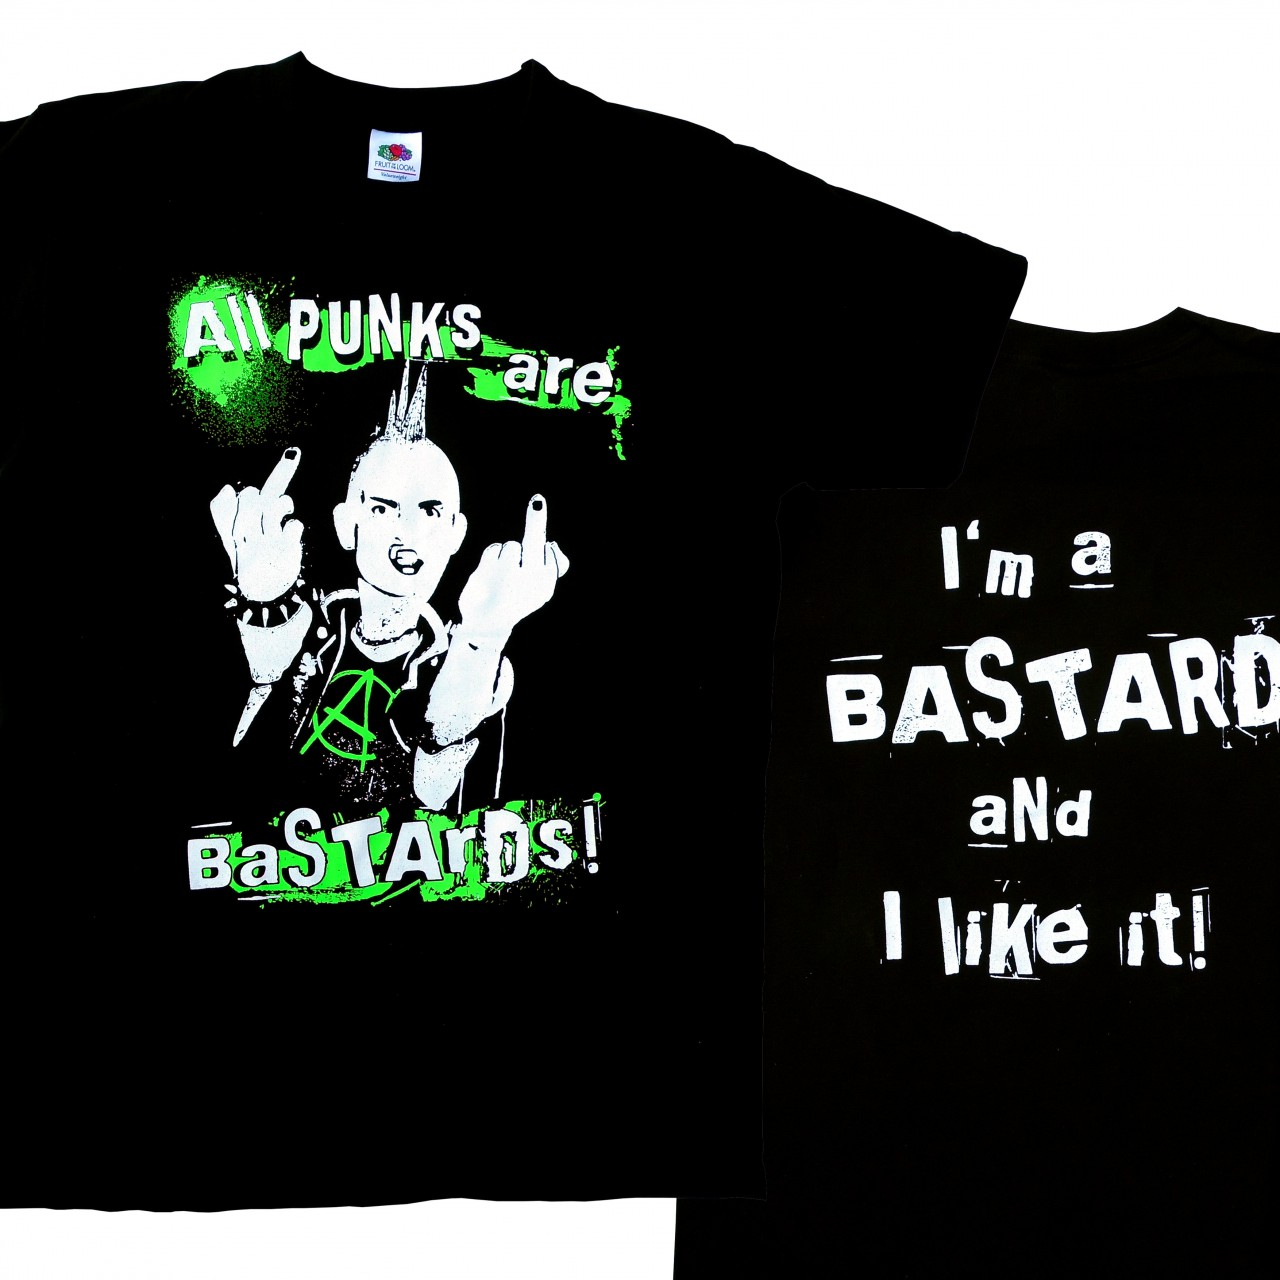 ALL PUNKS ARE BASTARDS